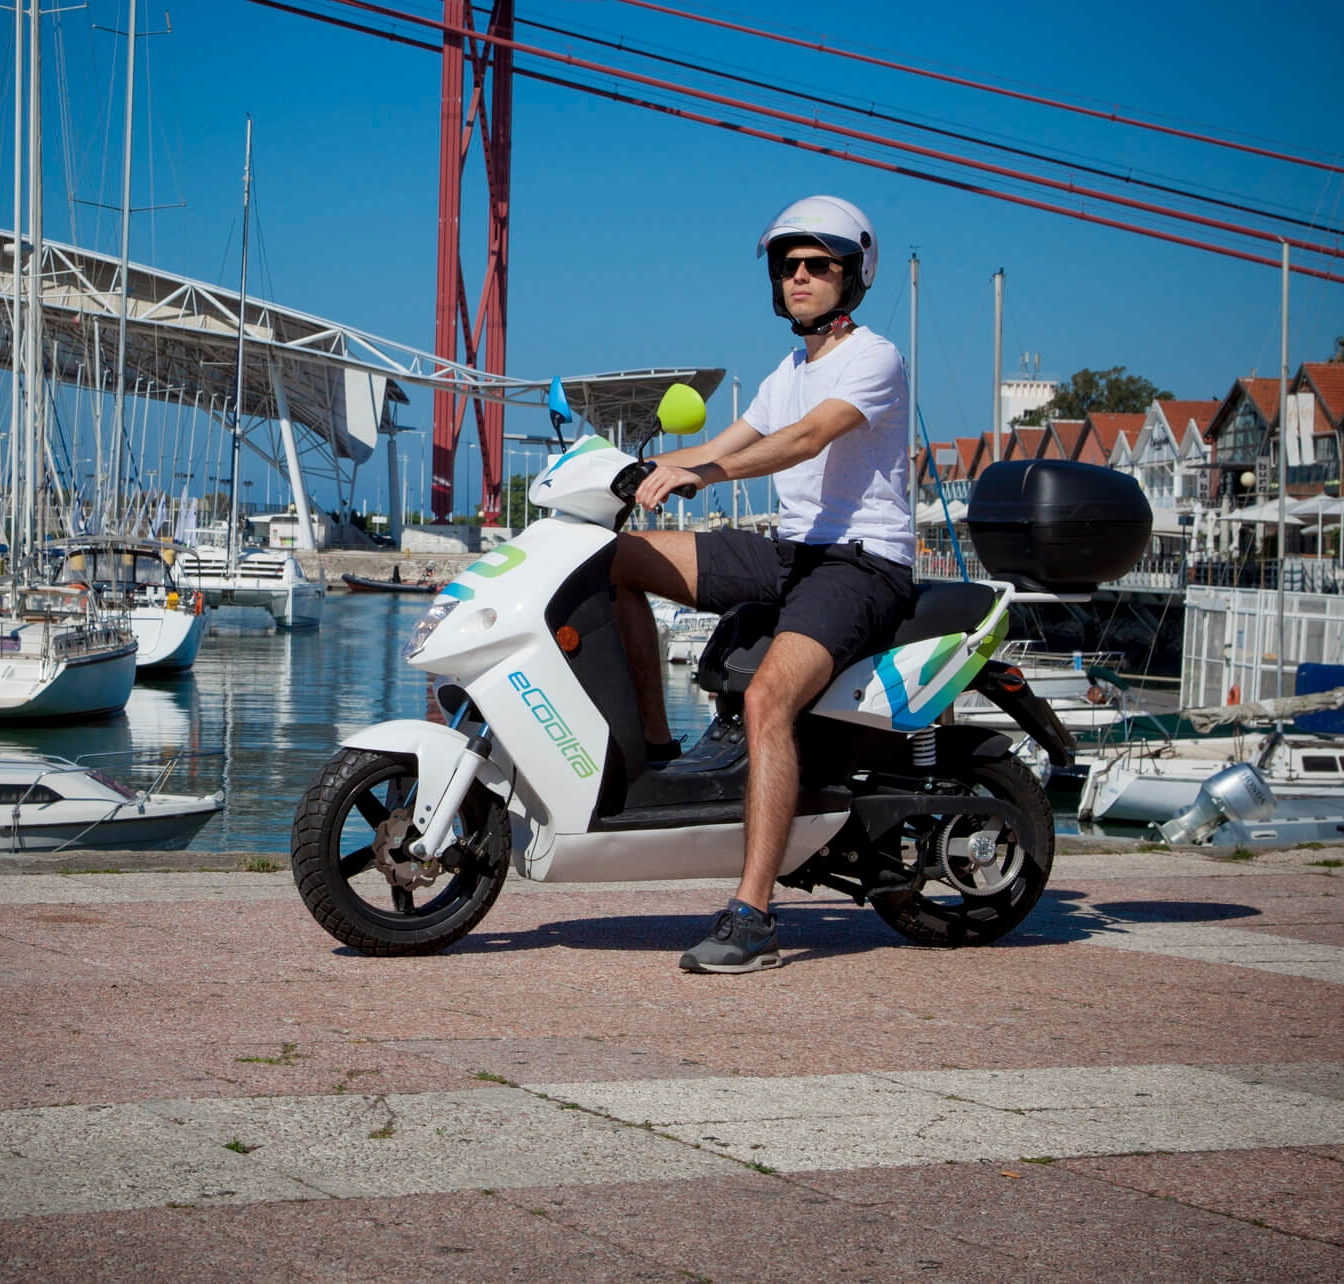 40+ million km - ELECTRICFEEL USERS HAVE RIDDEN BIKES AND E-SCOOTERS THE EQUIVALENT OF 1000 TIMES AROUND THE WORLD.